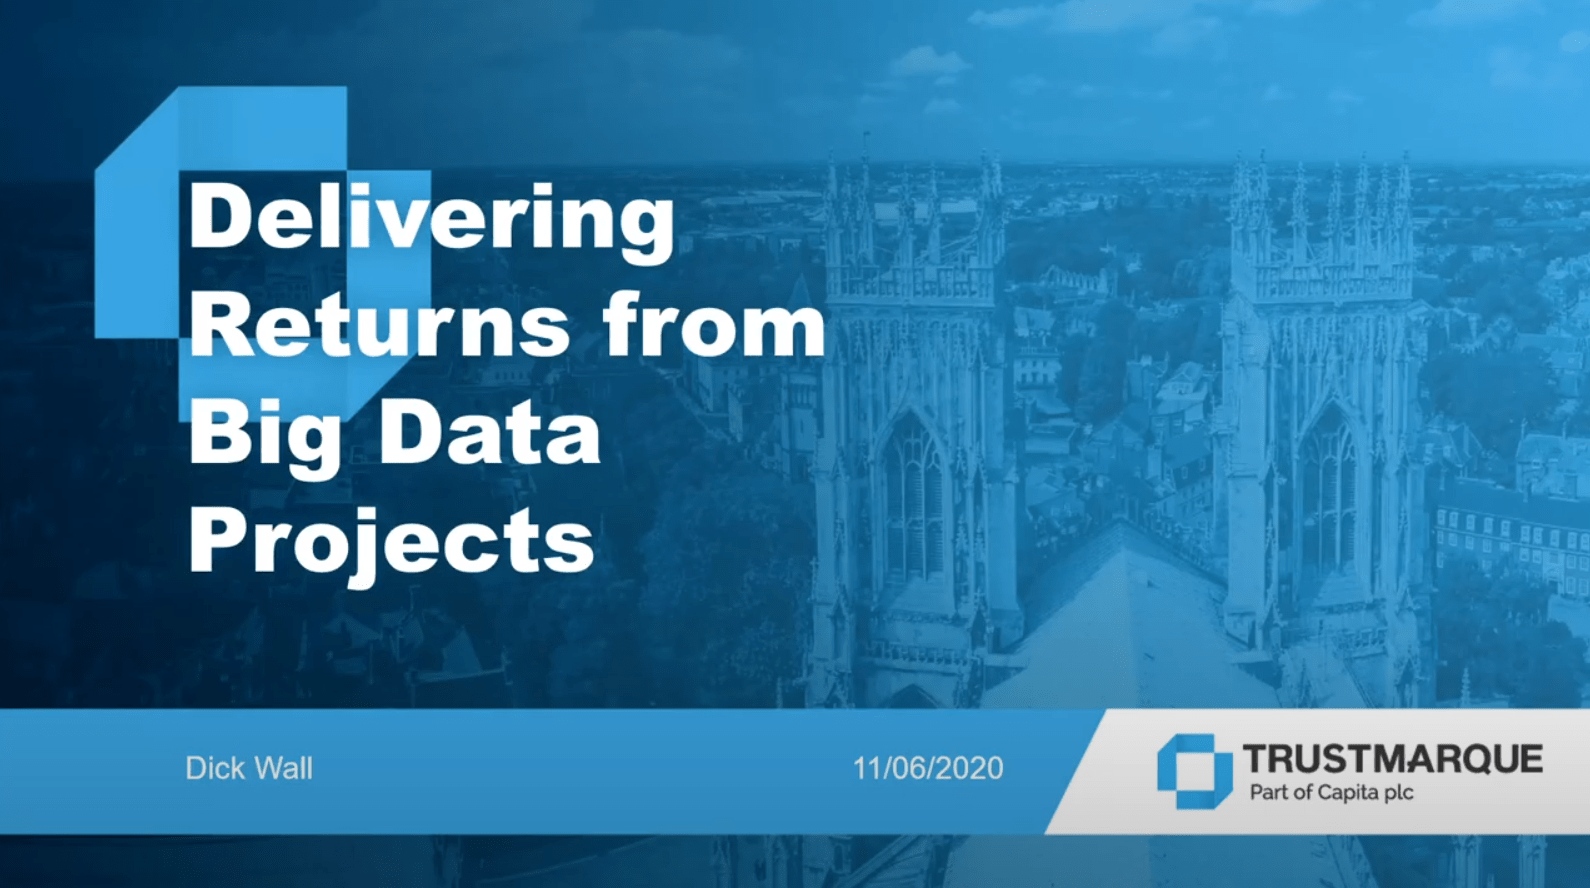 Delivering Returns from Big Data Projects